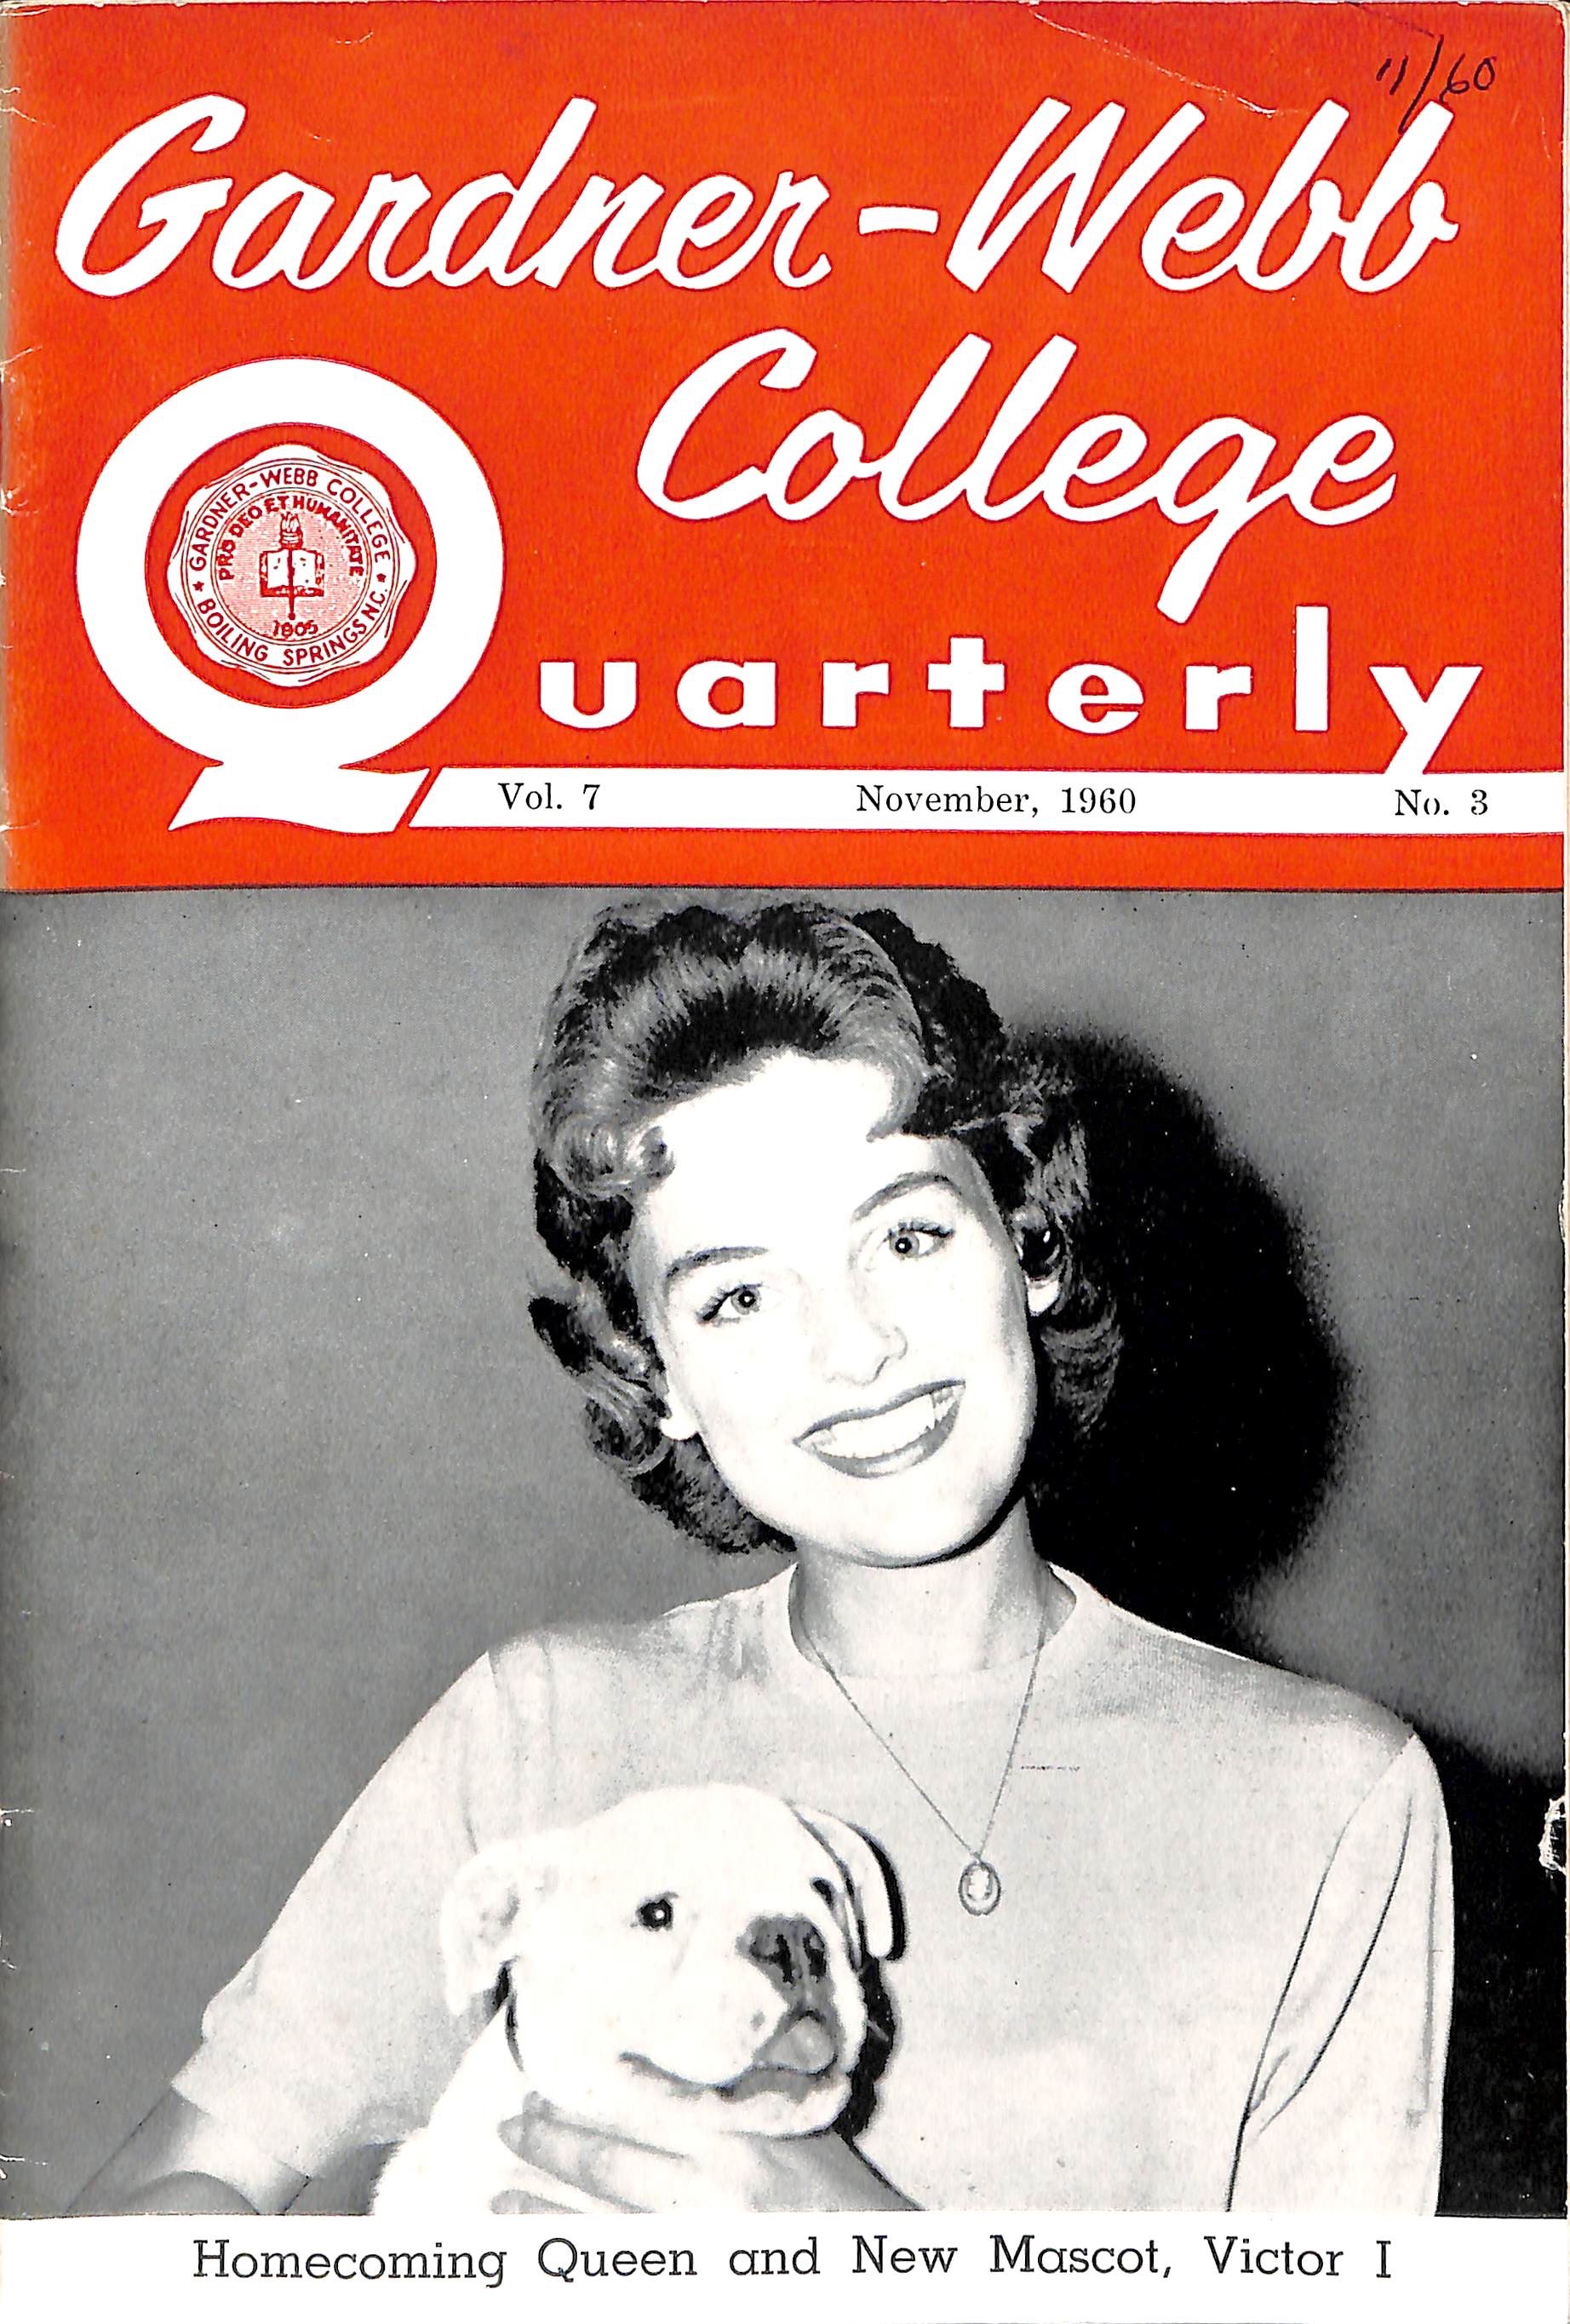 The cover of the 1960 Gadner-Webb College Quarterly. Victor I made his first appearance with the homecoming queen.